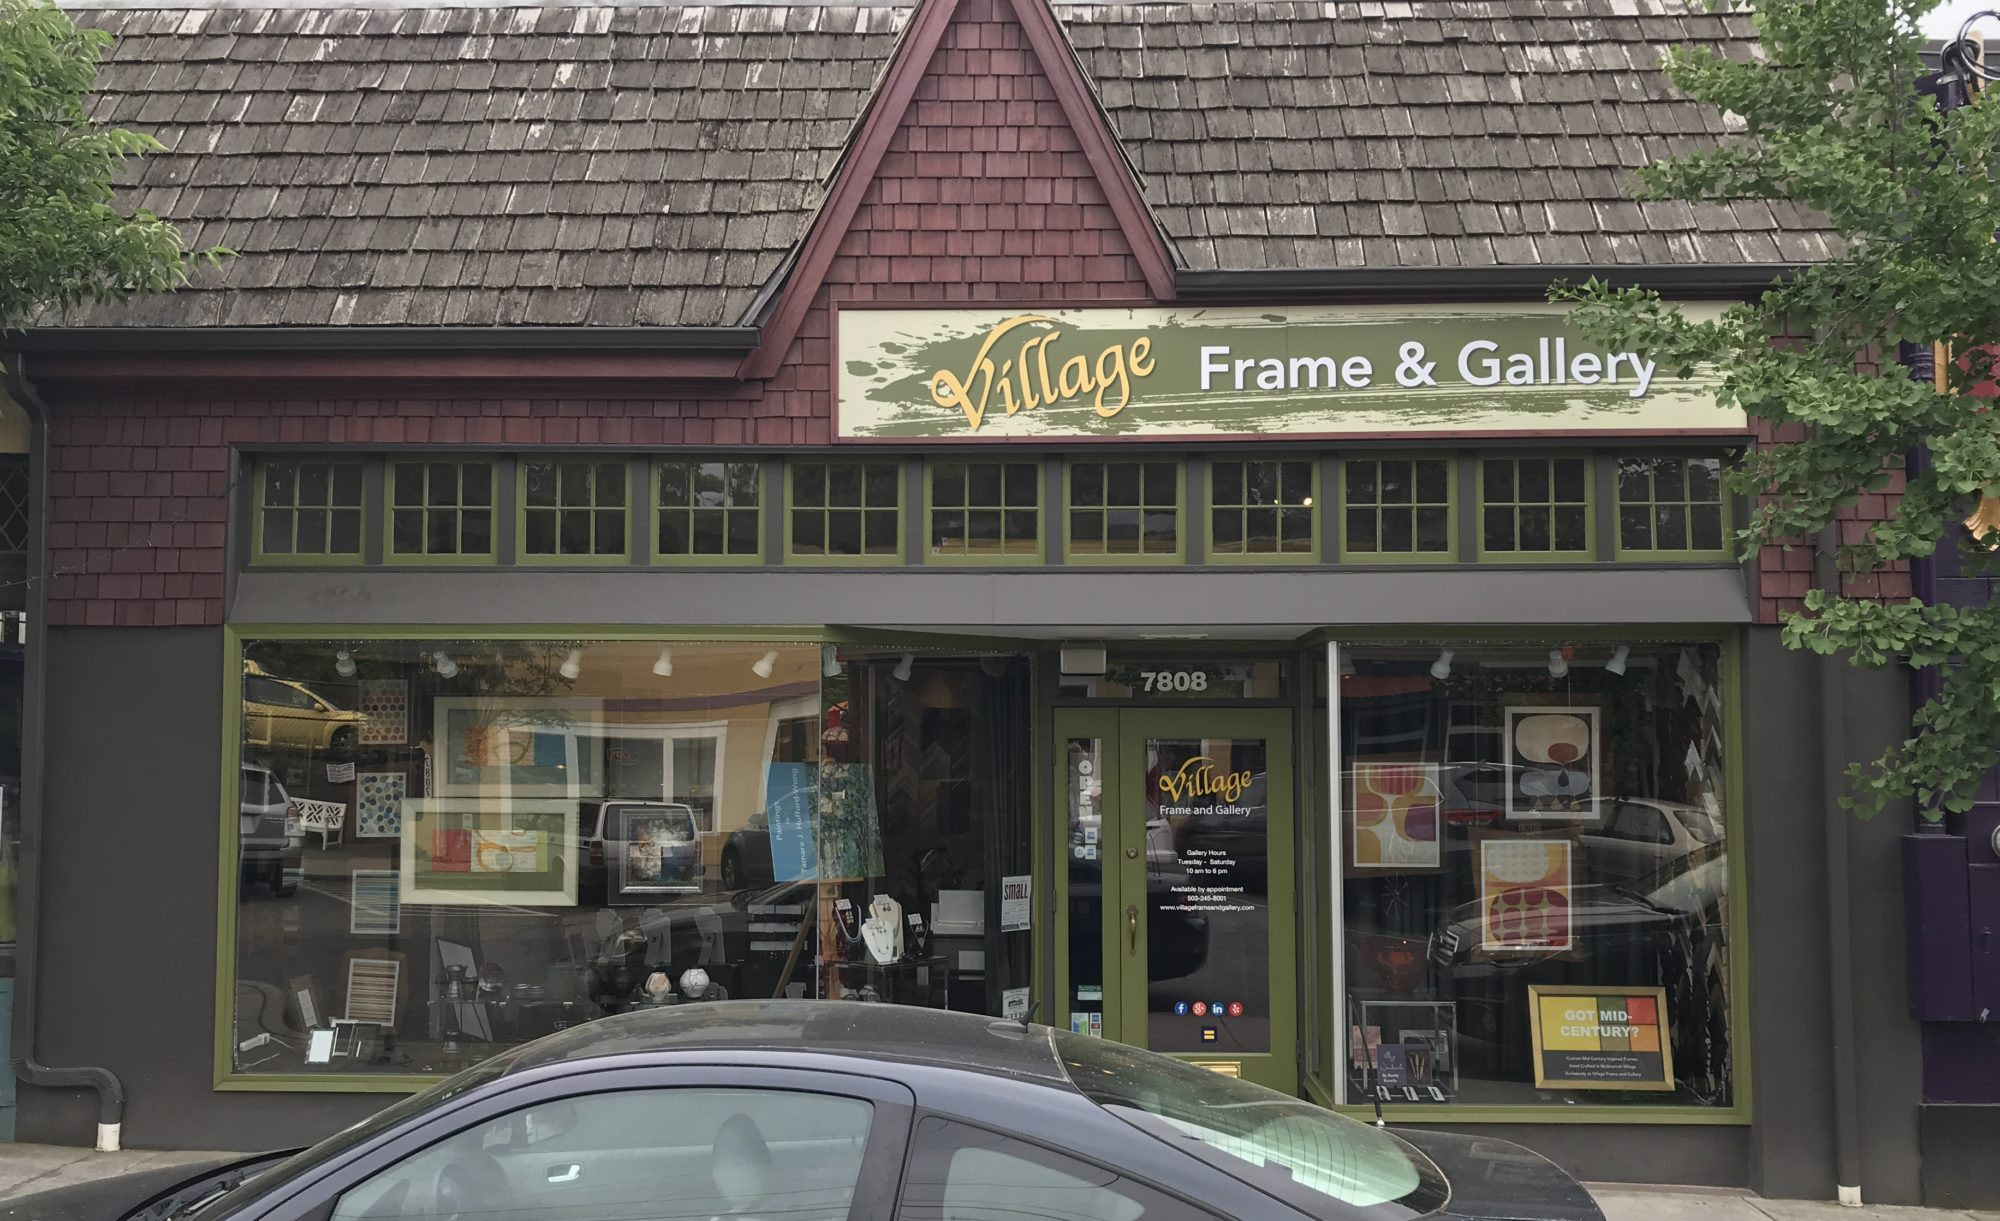 Custom framing and original artwork portland oregon village frame and gallery solutioingenieria Image collections